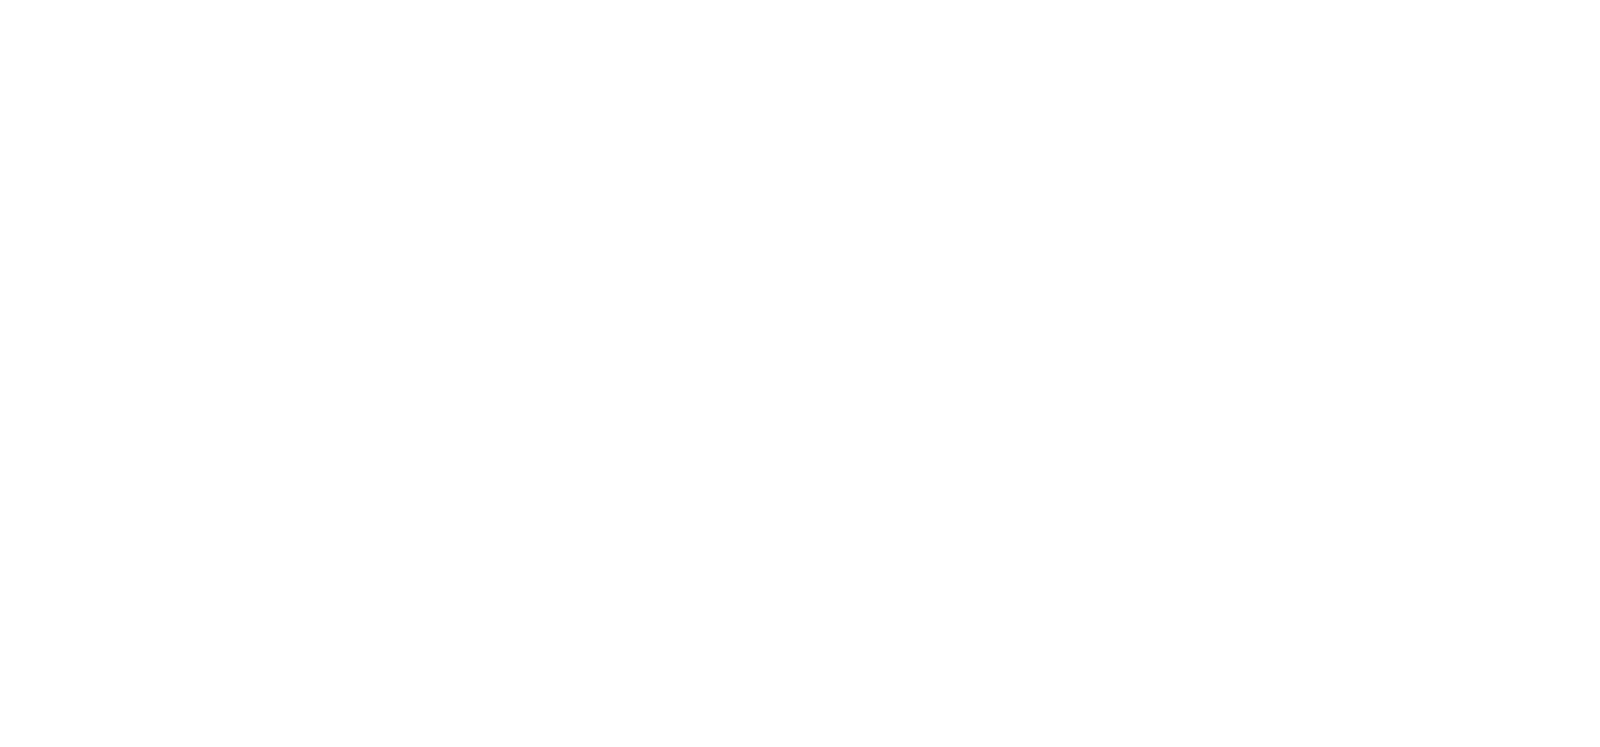 Niall Fox Solicitors